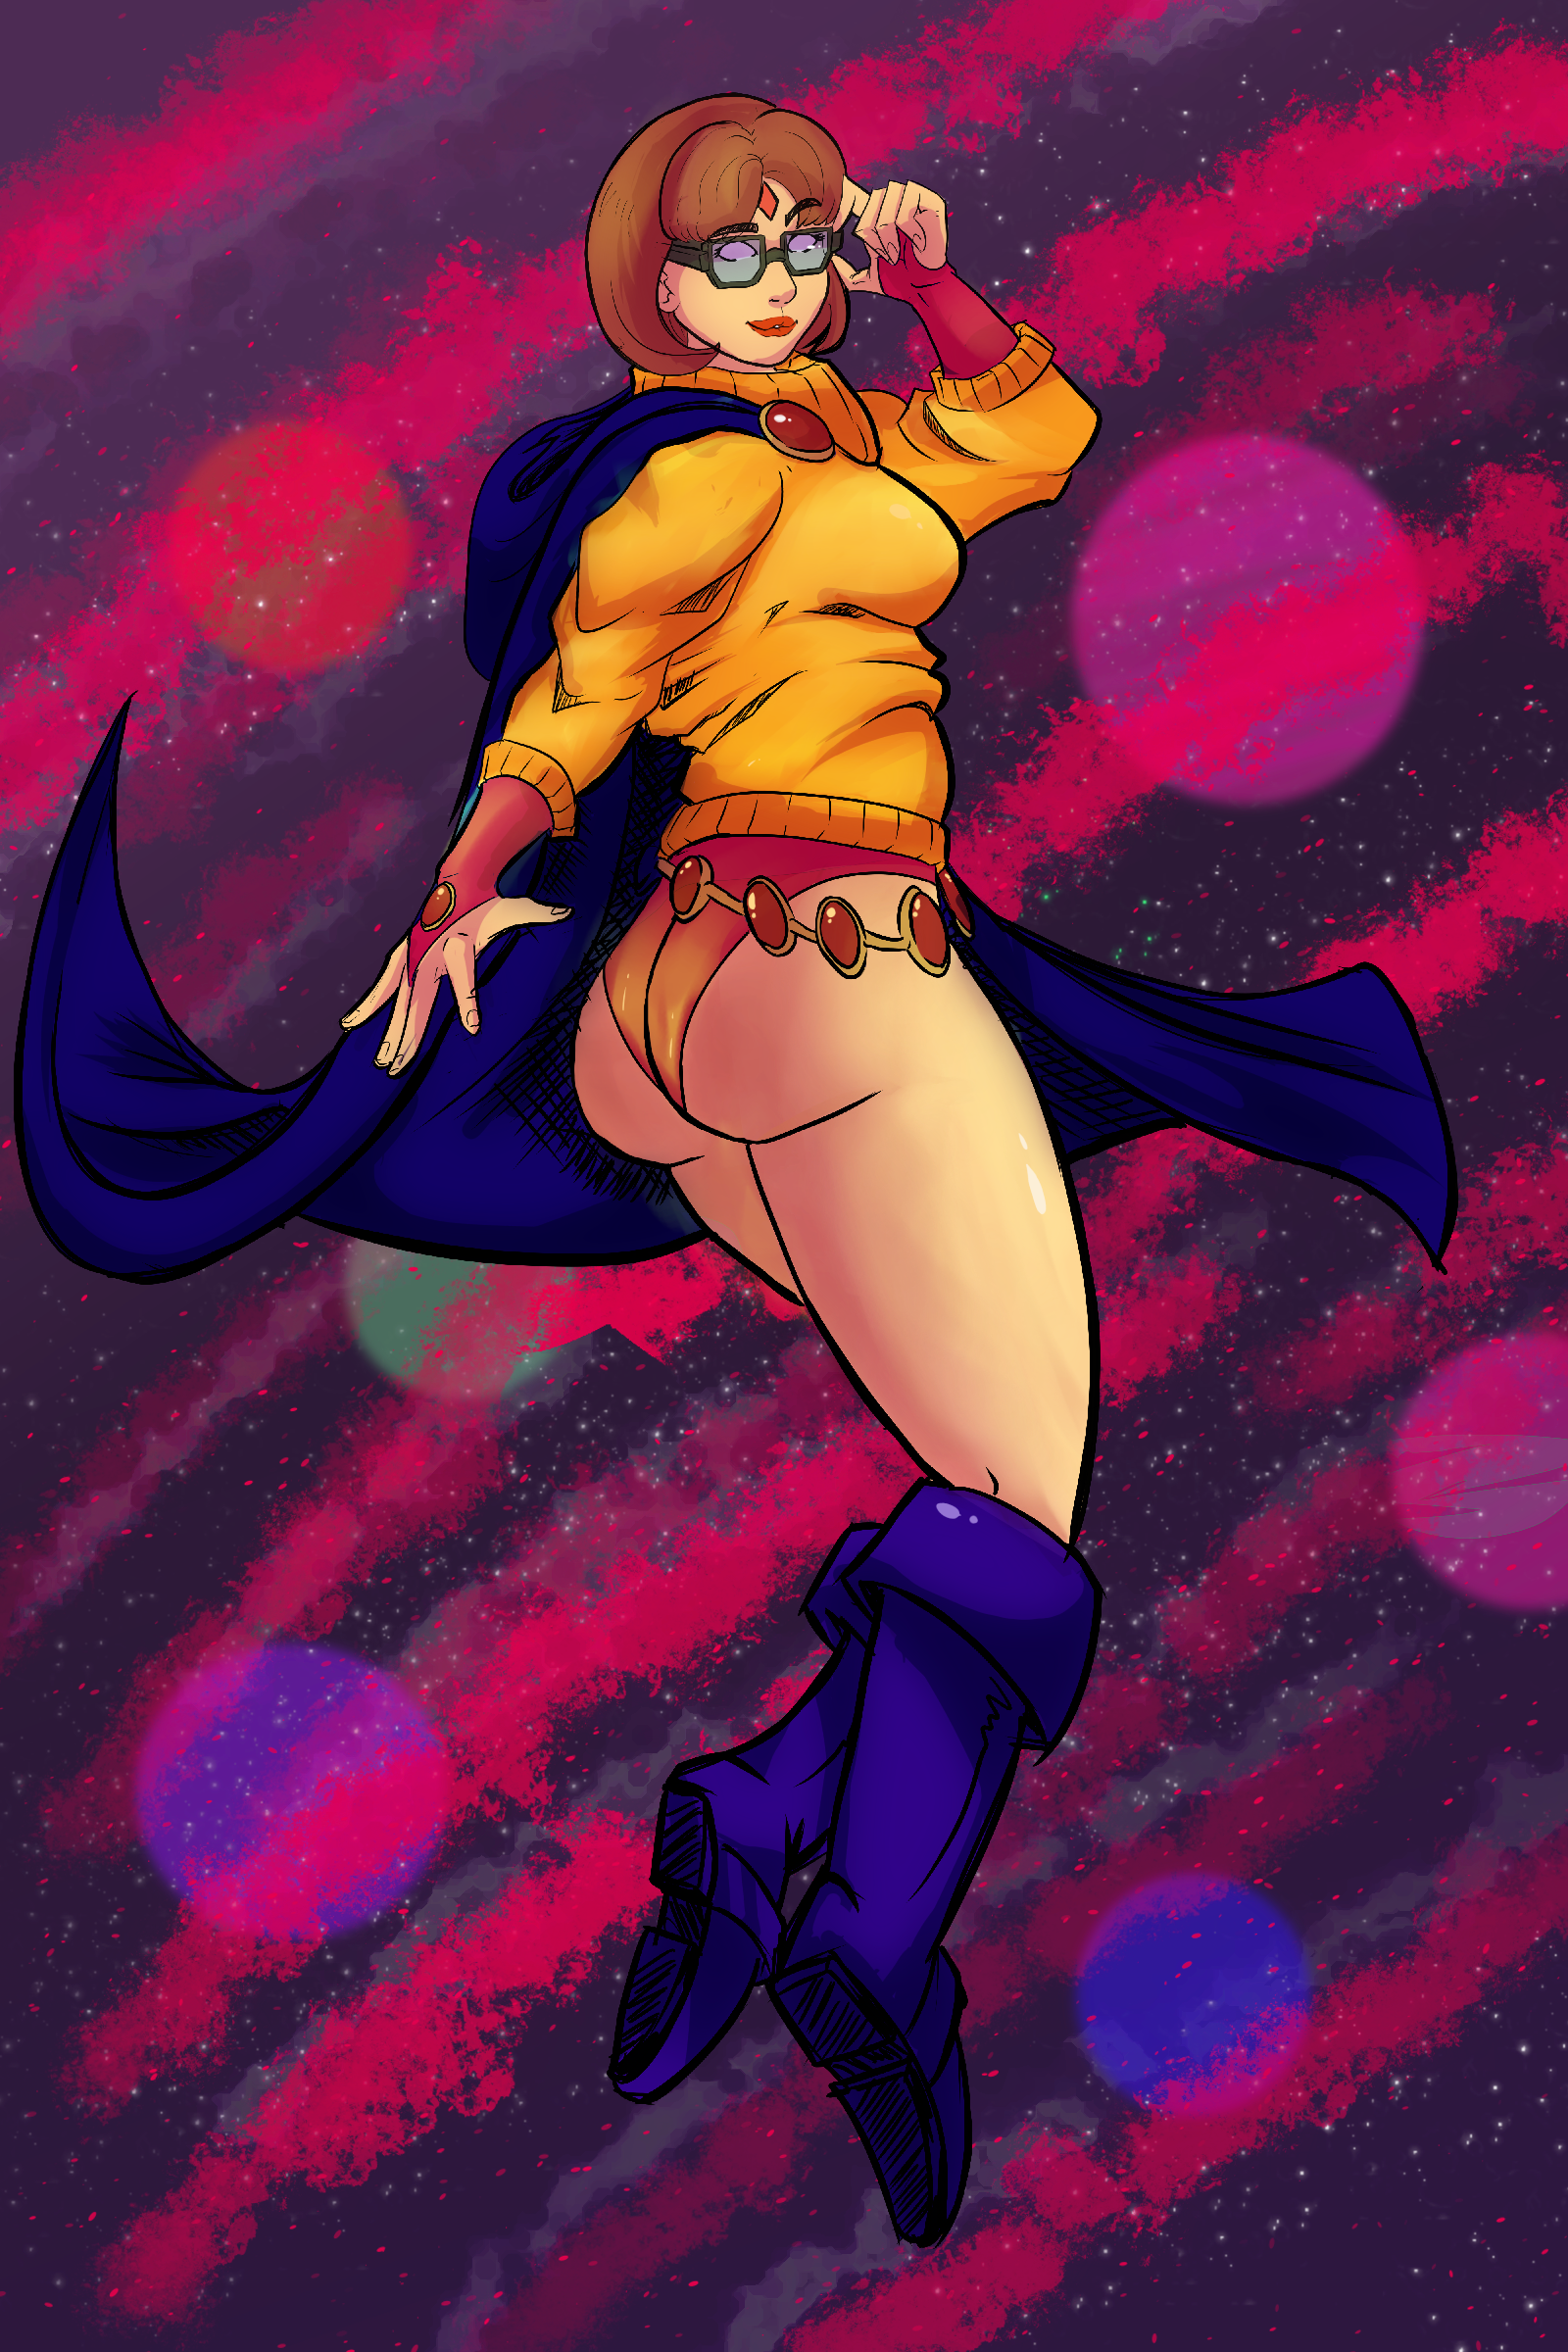 Velma in Raven outfit 4chan request